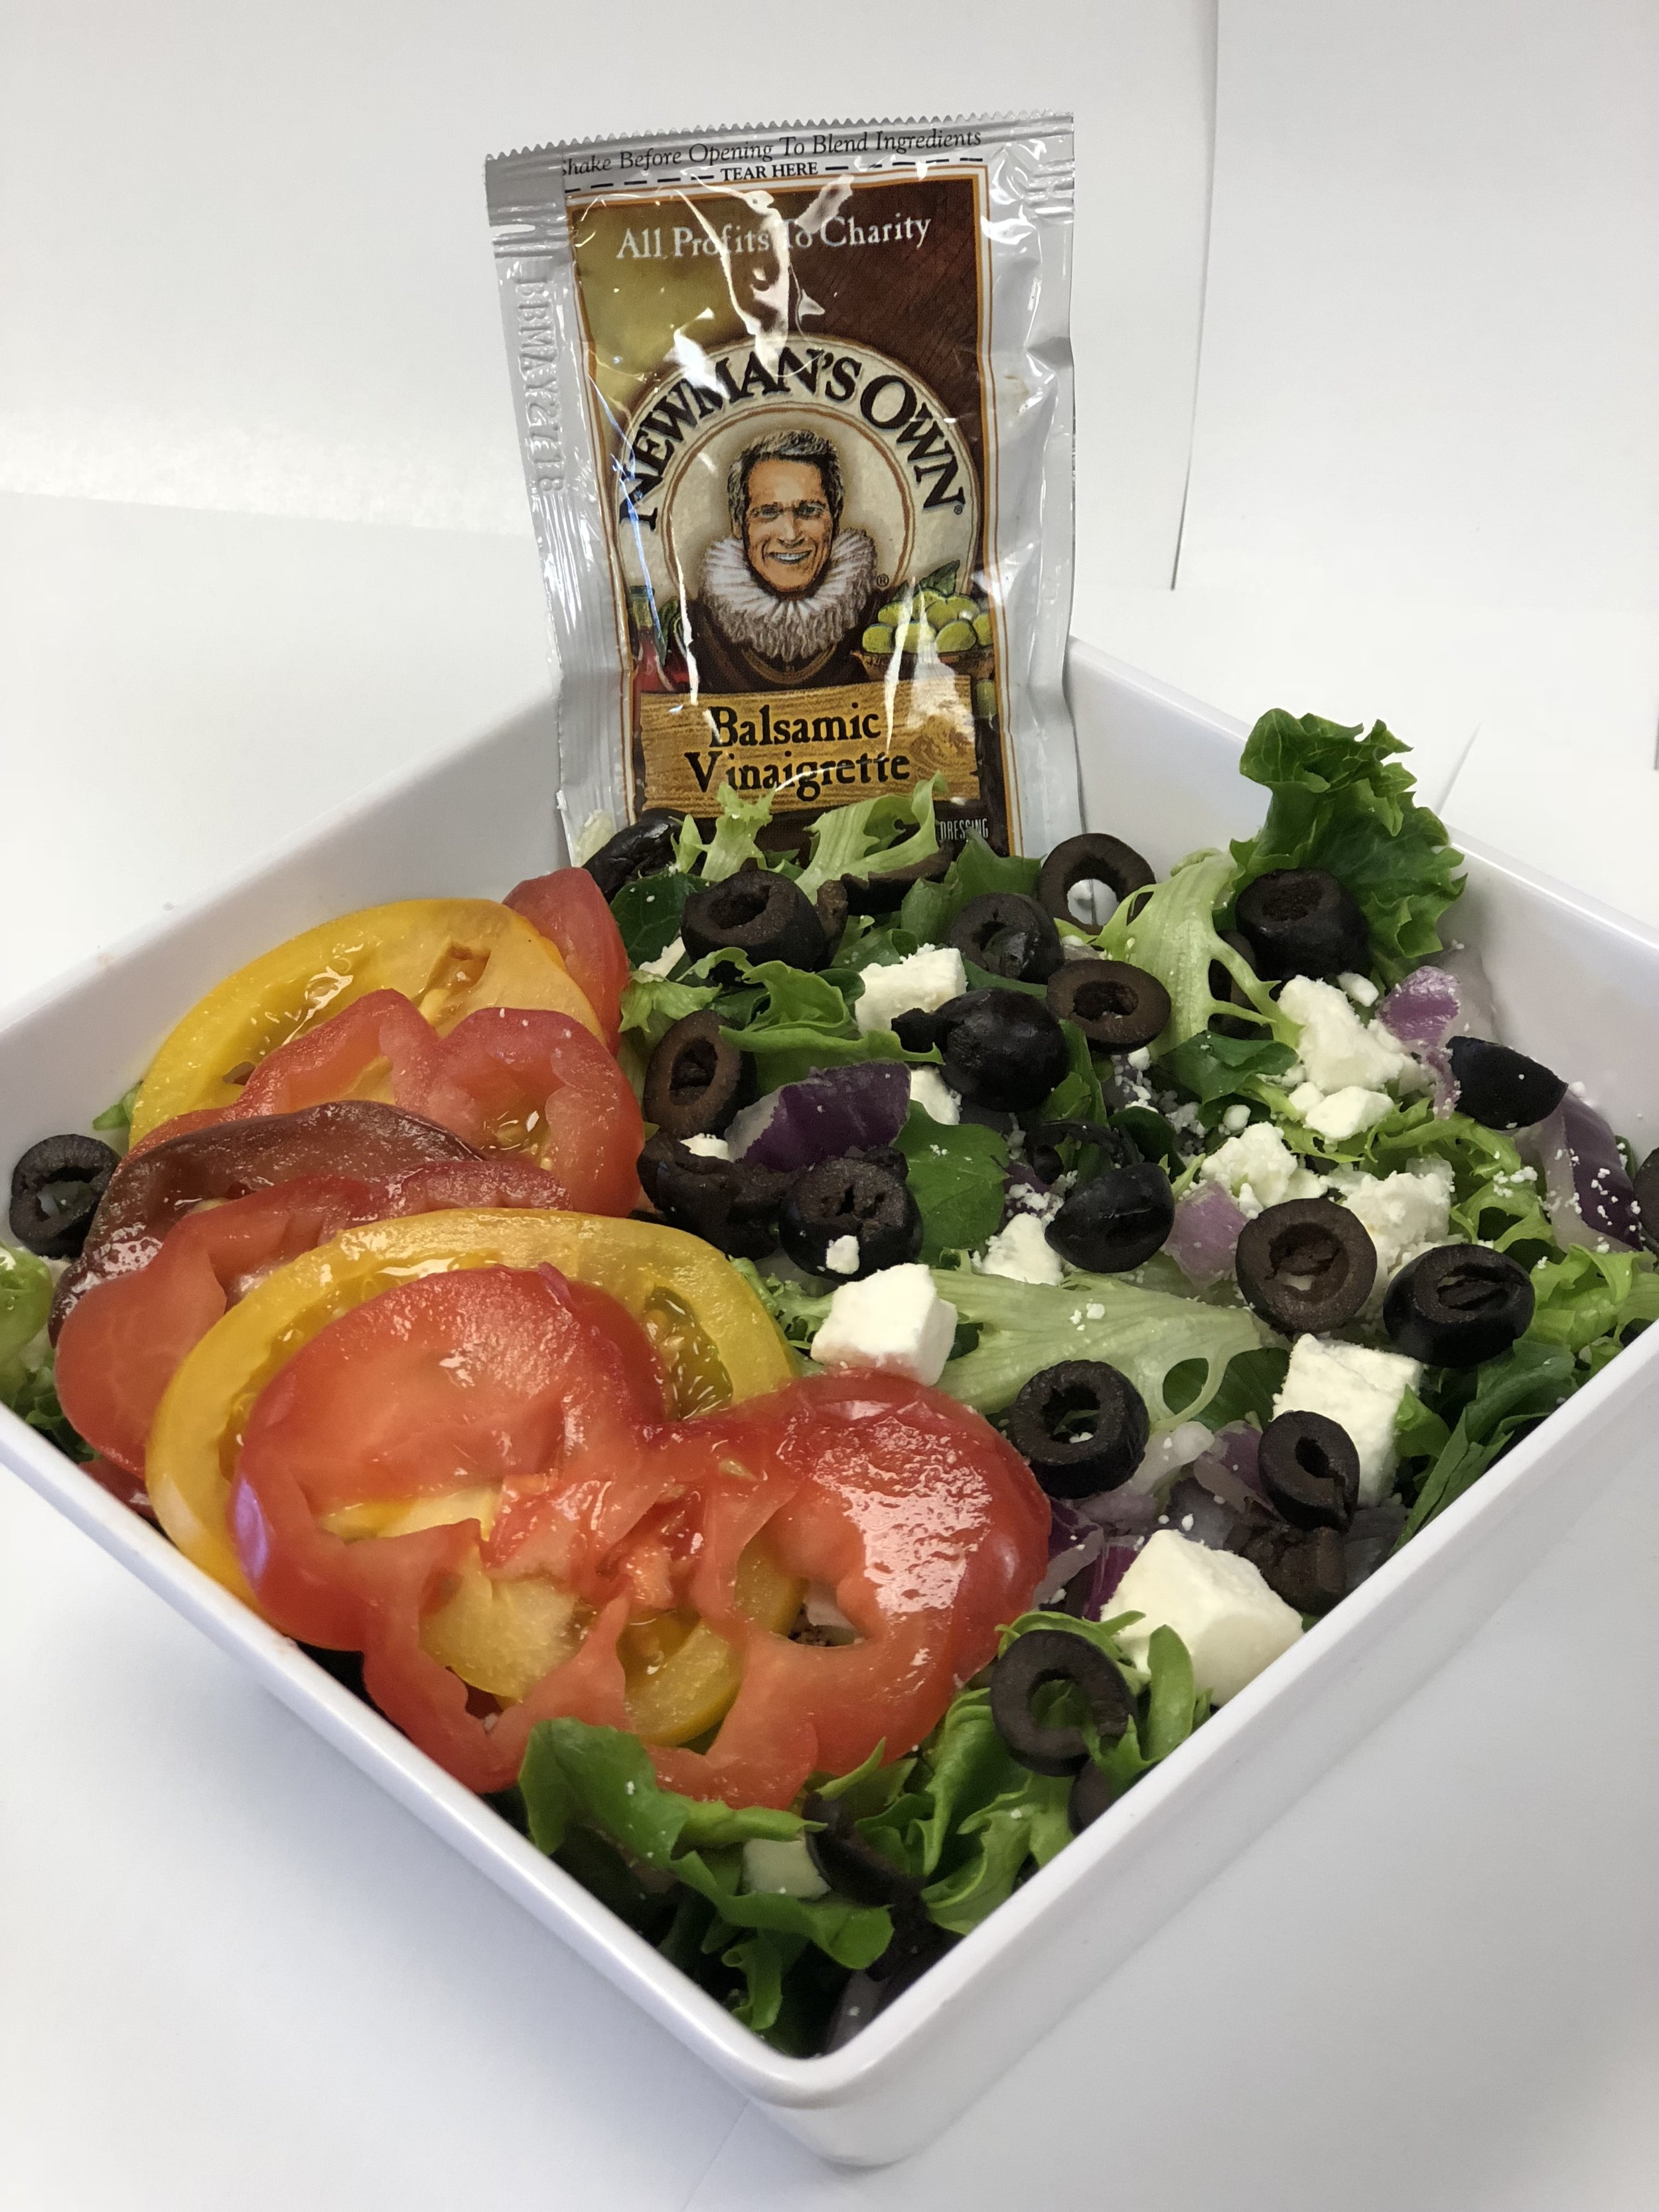 Heirloom Tomato Salad  Starting with a bed of Arcadian Harvest Emerald lettuce and topped with red onions, Feta cheese, sliced heirloom tomatoes, black olives and served with Balsamic dressing on the side.  Small: 6.84      Large: 8.73